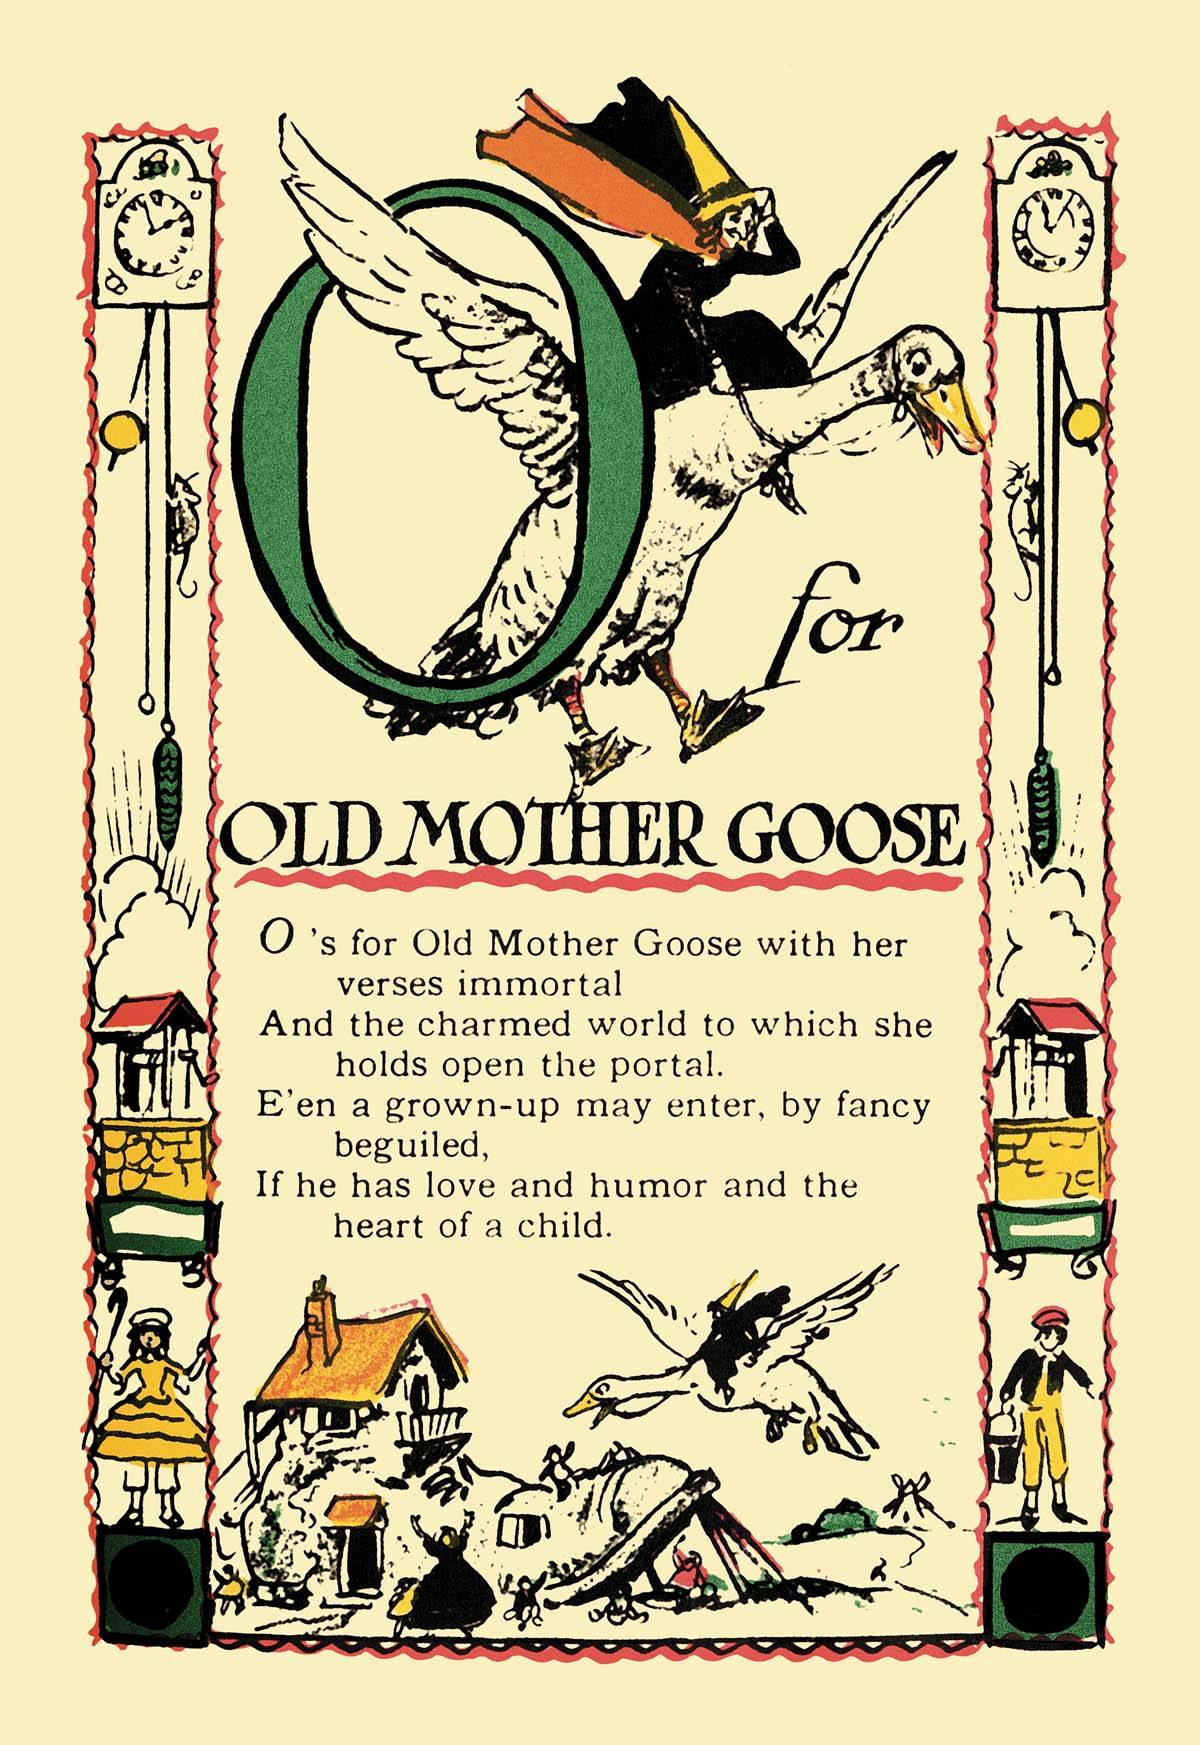 Vintage Children S Book Cover Prints : O for old mother goose posters and canvas art prints